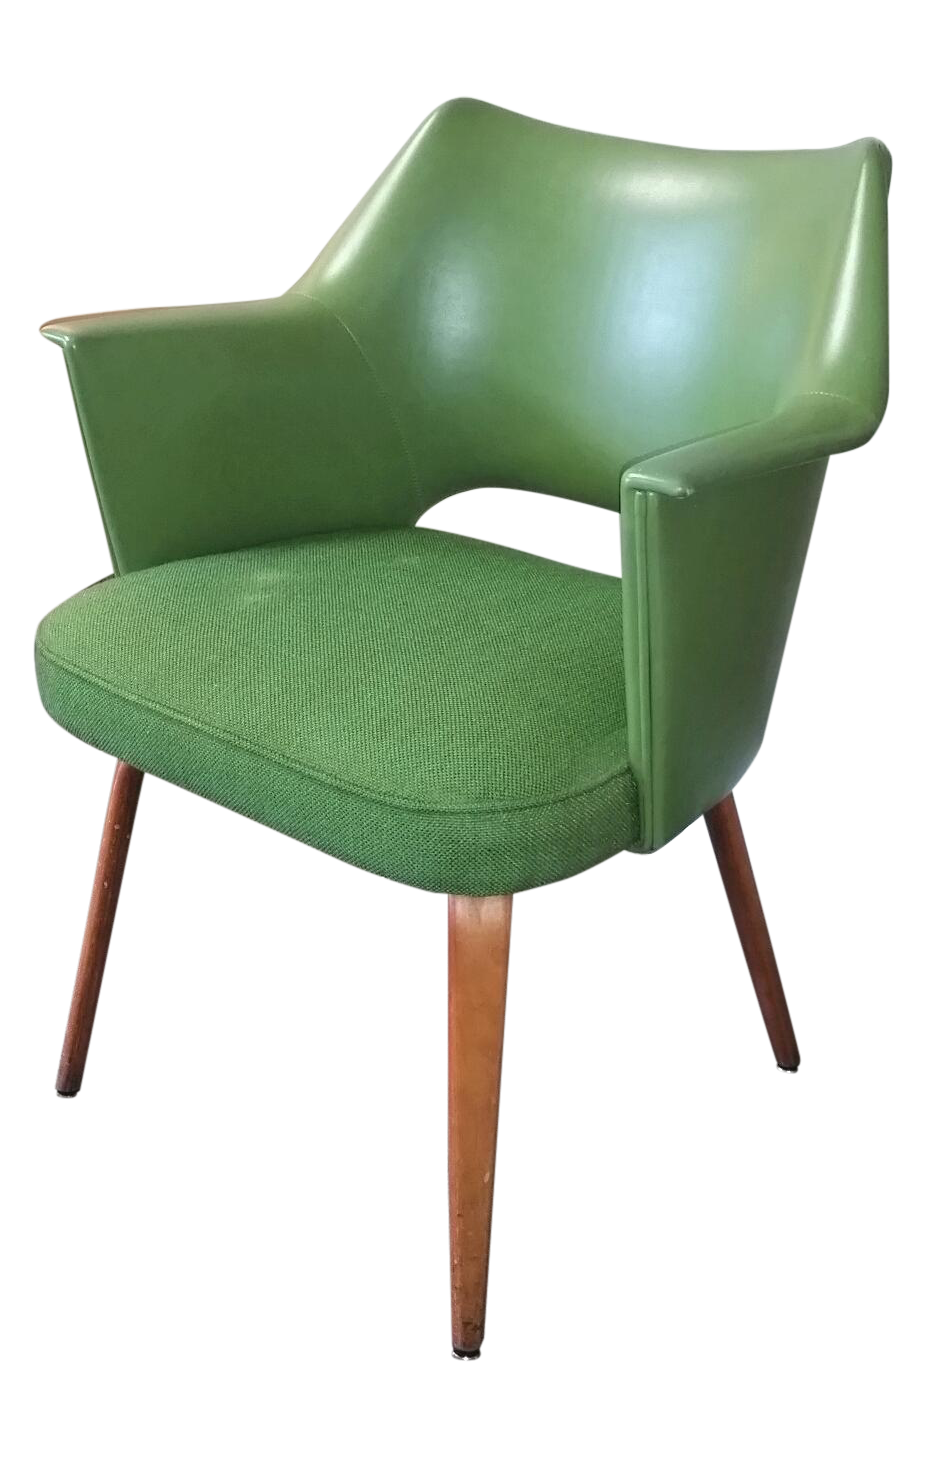 "Lovely apple green vinyl and fabric Thonet bentwood armchair.  It's covered in the original tweed fabric and vinyl with new foam in seat. It has a sweet scoop shape and new seat foam, which make this an excellent reading chair.    There is some light wear on the fabric, legs and vinyl, although the chair is in overall great vintage shape. It's marked Thonet with a tag. Add this sexy sculptural chair to the bedroom, office or living room!  Seat is 18"" high and 19.5"" deep."